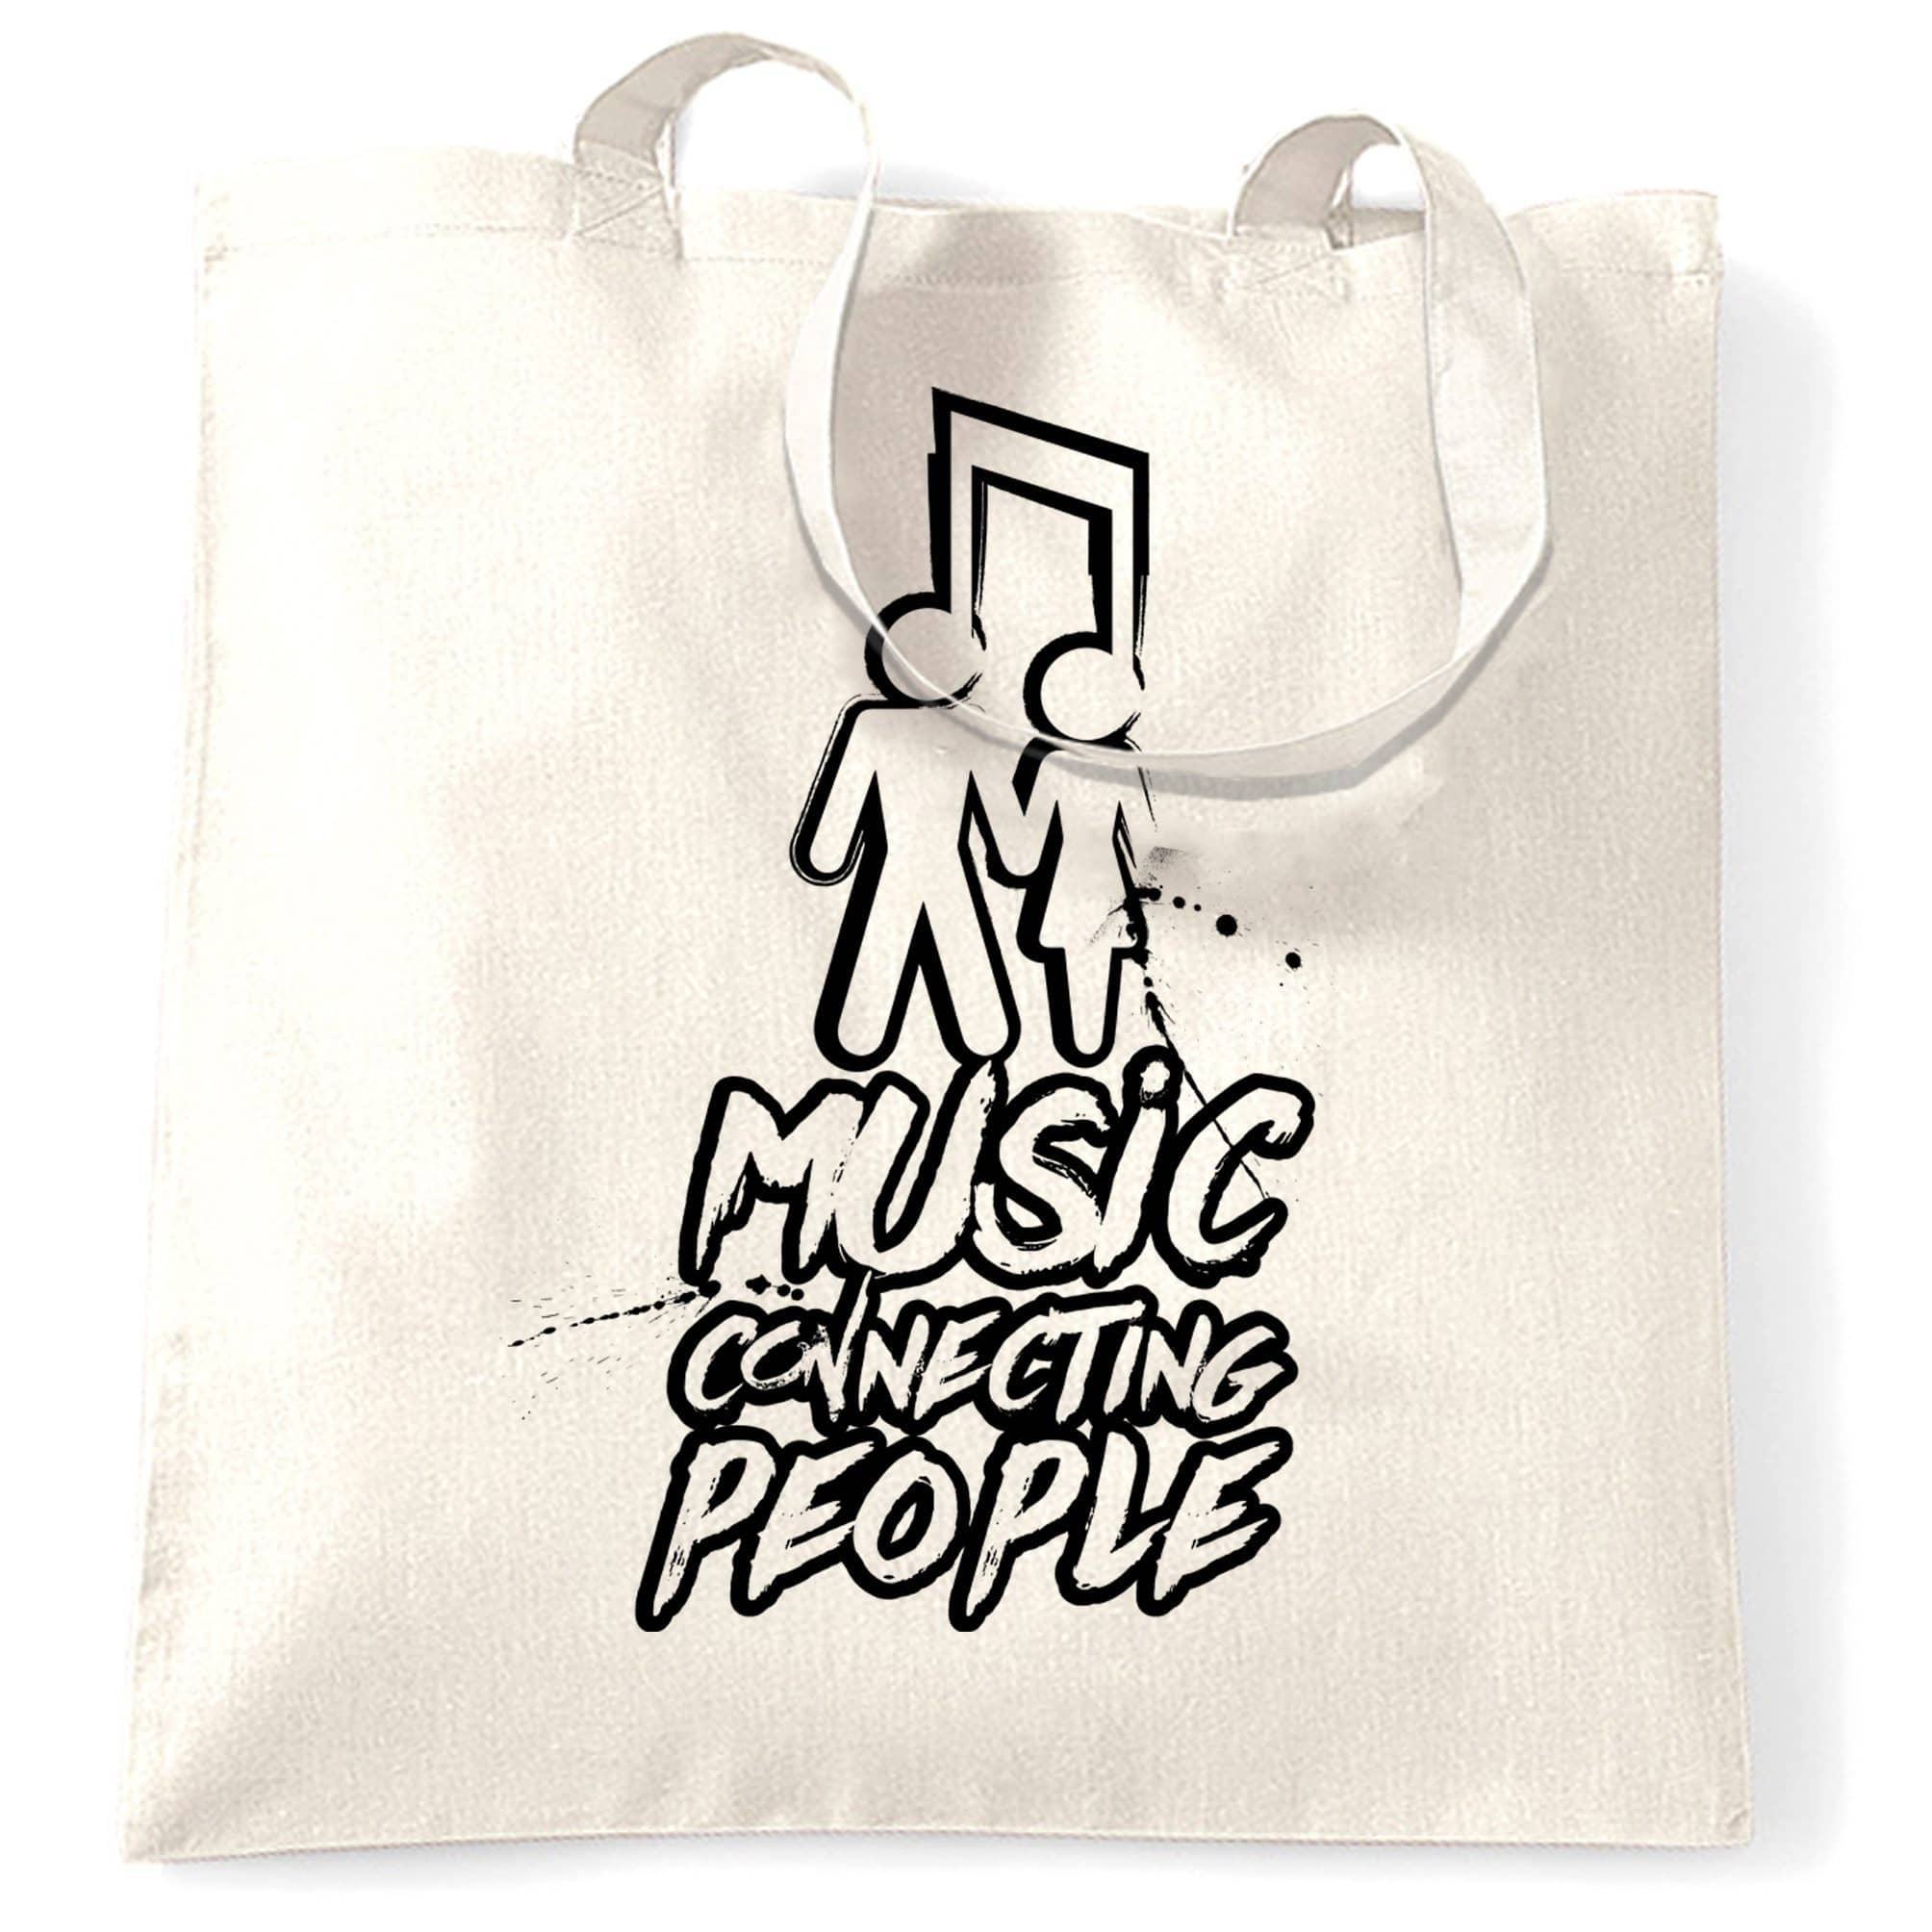 Cute Couples Tote Bag Music Connecting People Slogan